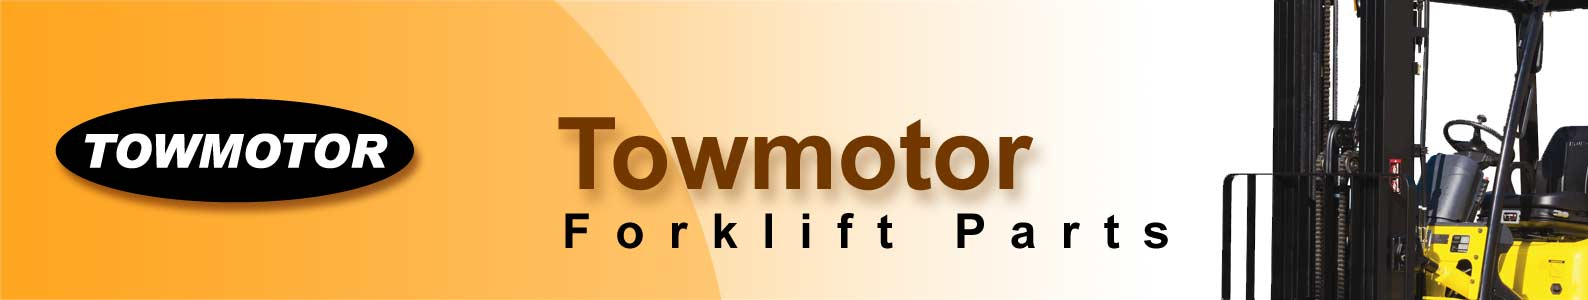 Towmotor Forklift Parts